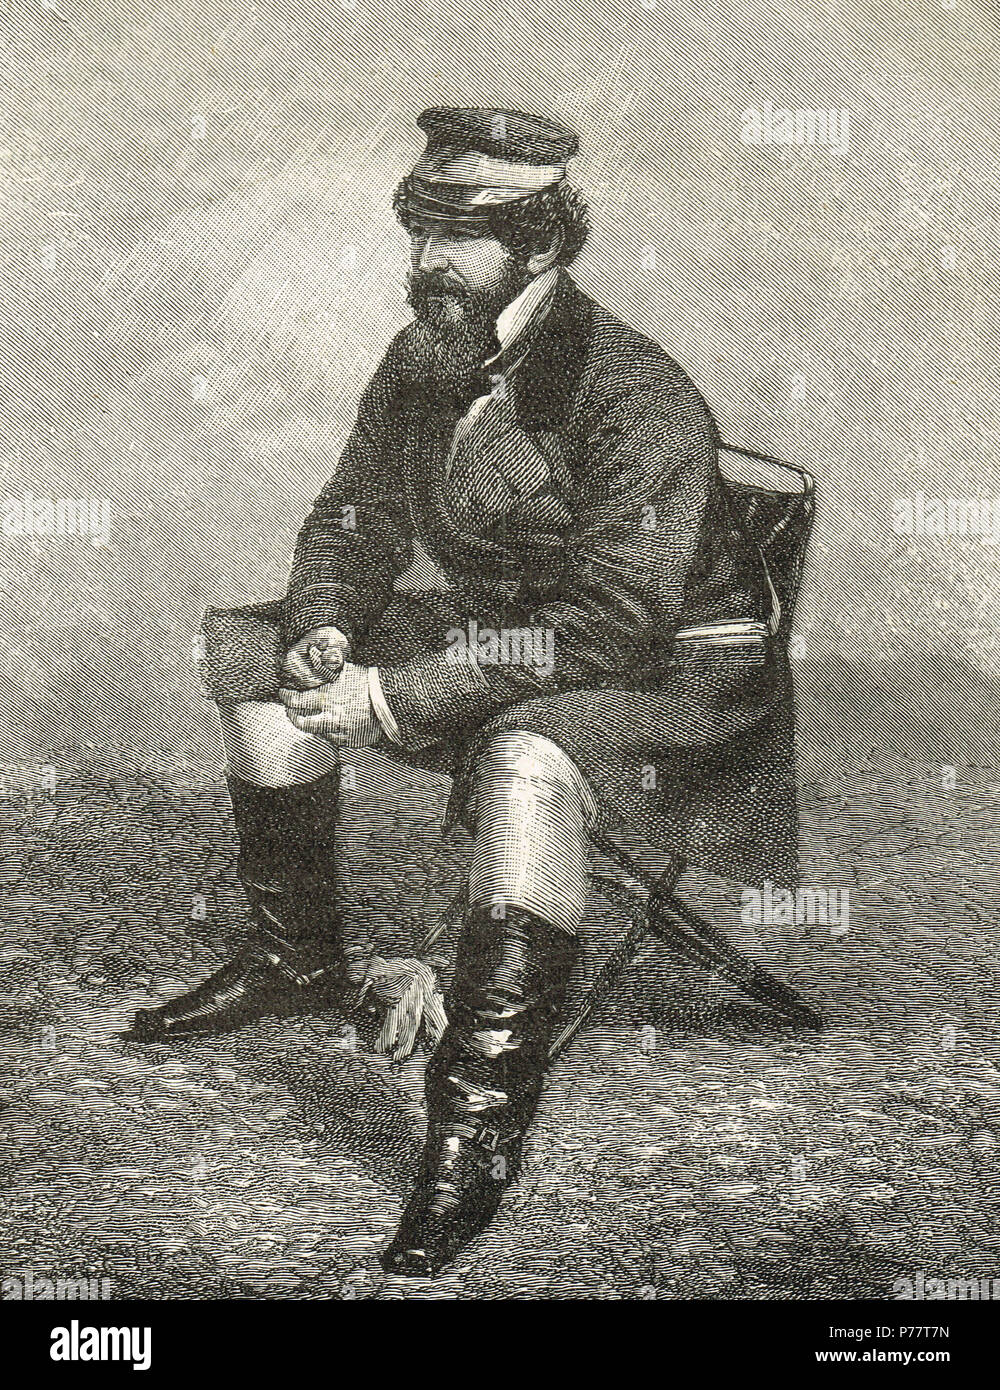 Sir William Howard Russell, Irish reporter with The Times, considered one of the first modern war correspondents, covering the Crimean War - Stock Image